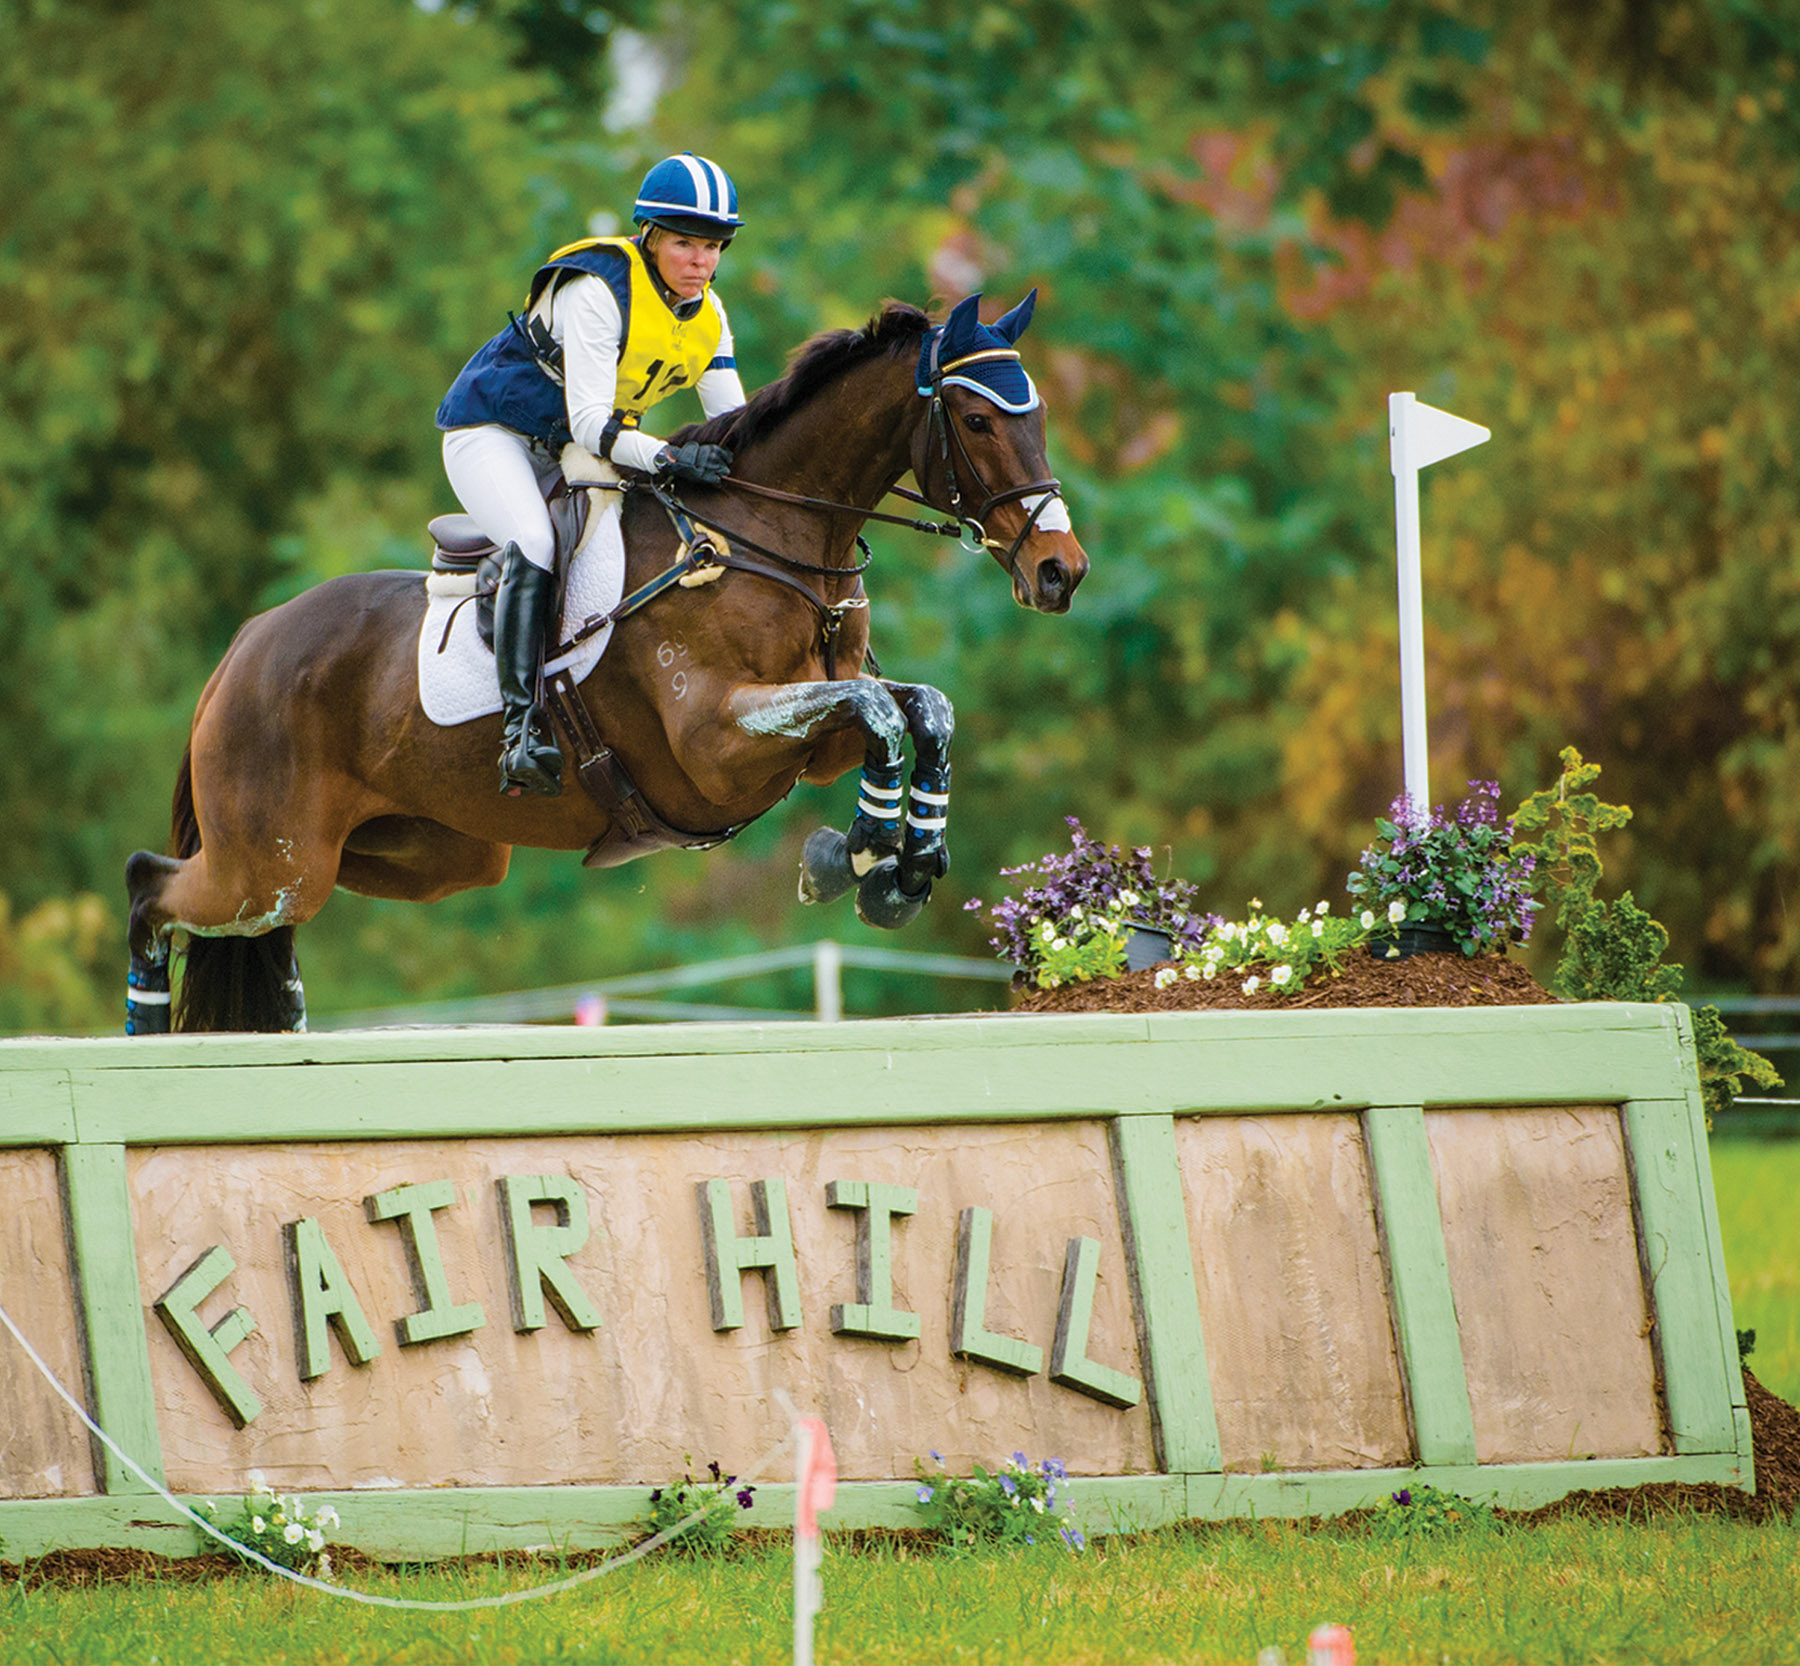 Shannon Brinkman participates in the Fair Hill International